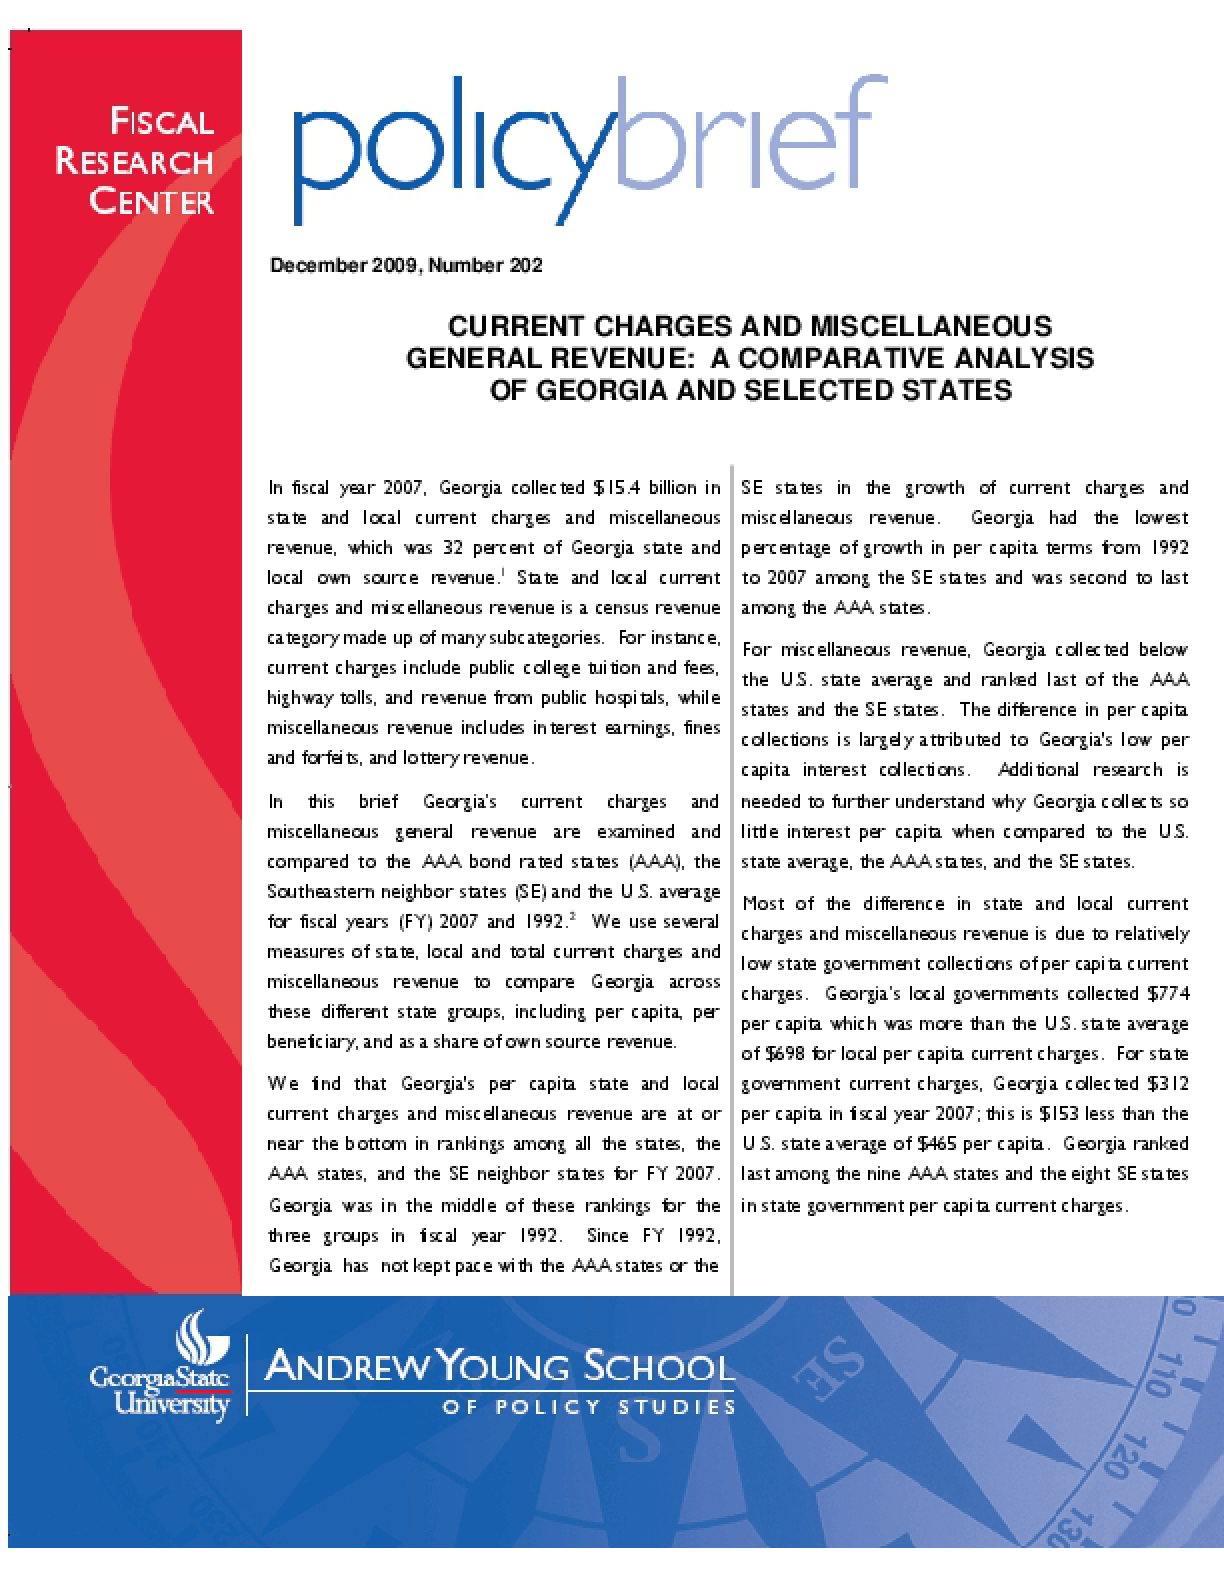 Current Charges and Miscellaneous Revenues: A Comparative Analysis of Georgia and Selective States - Brief